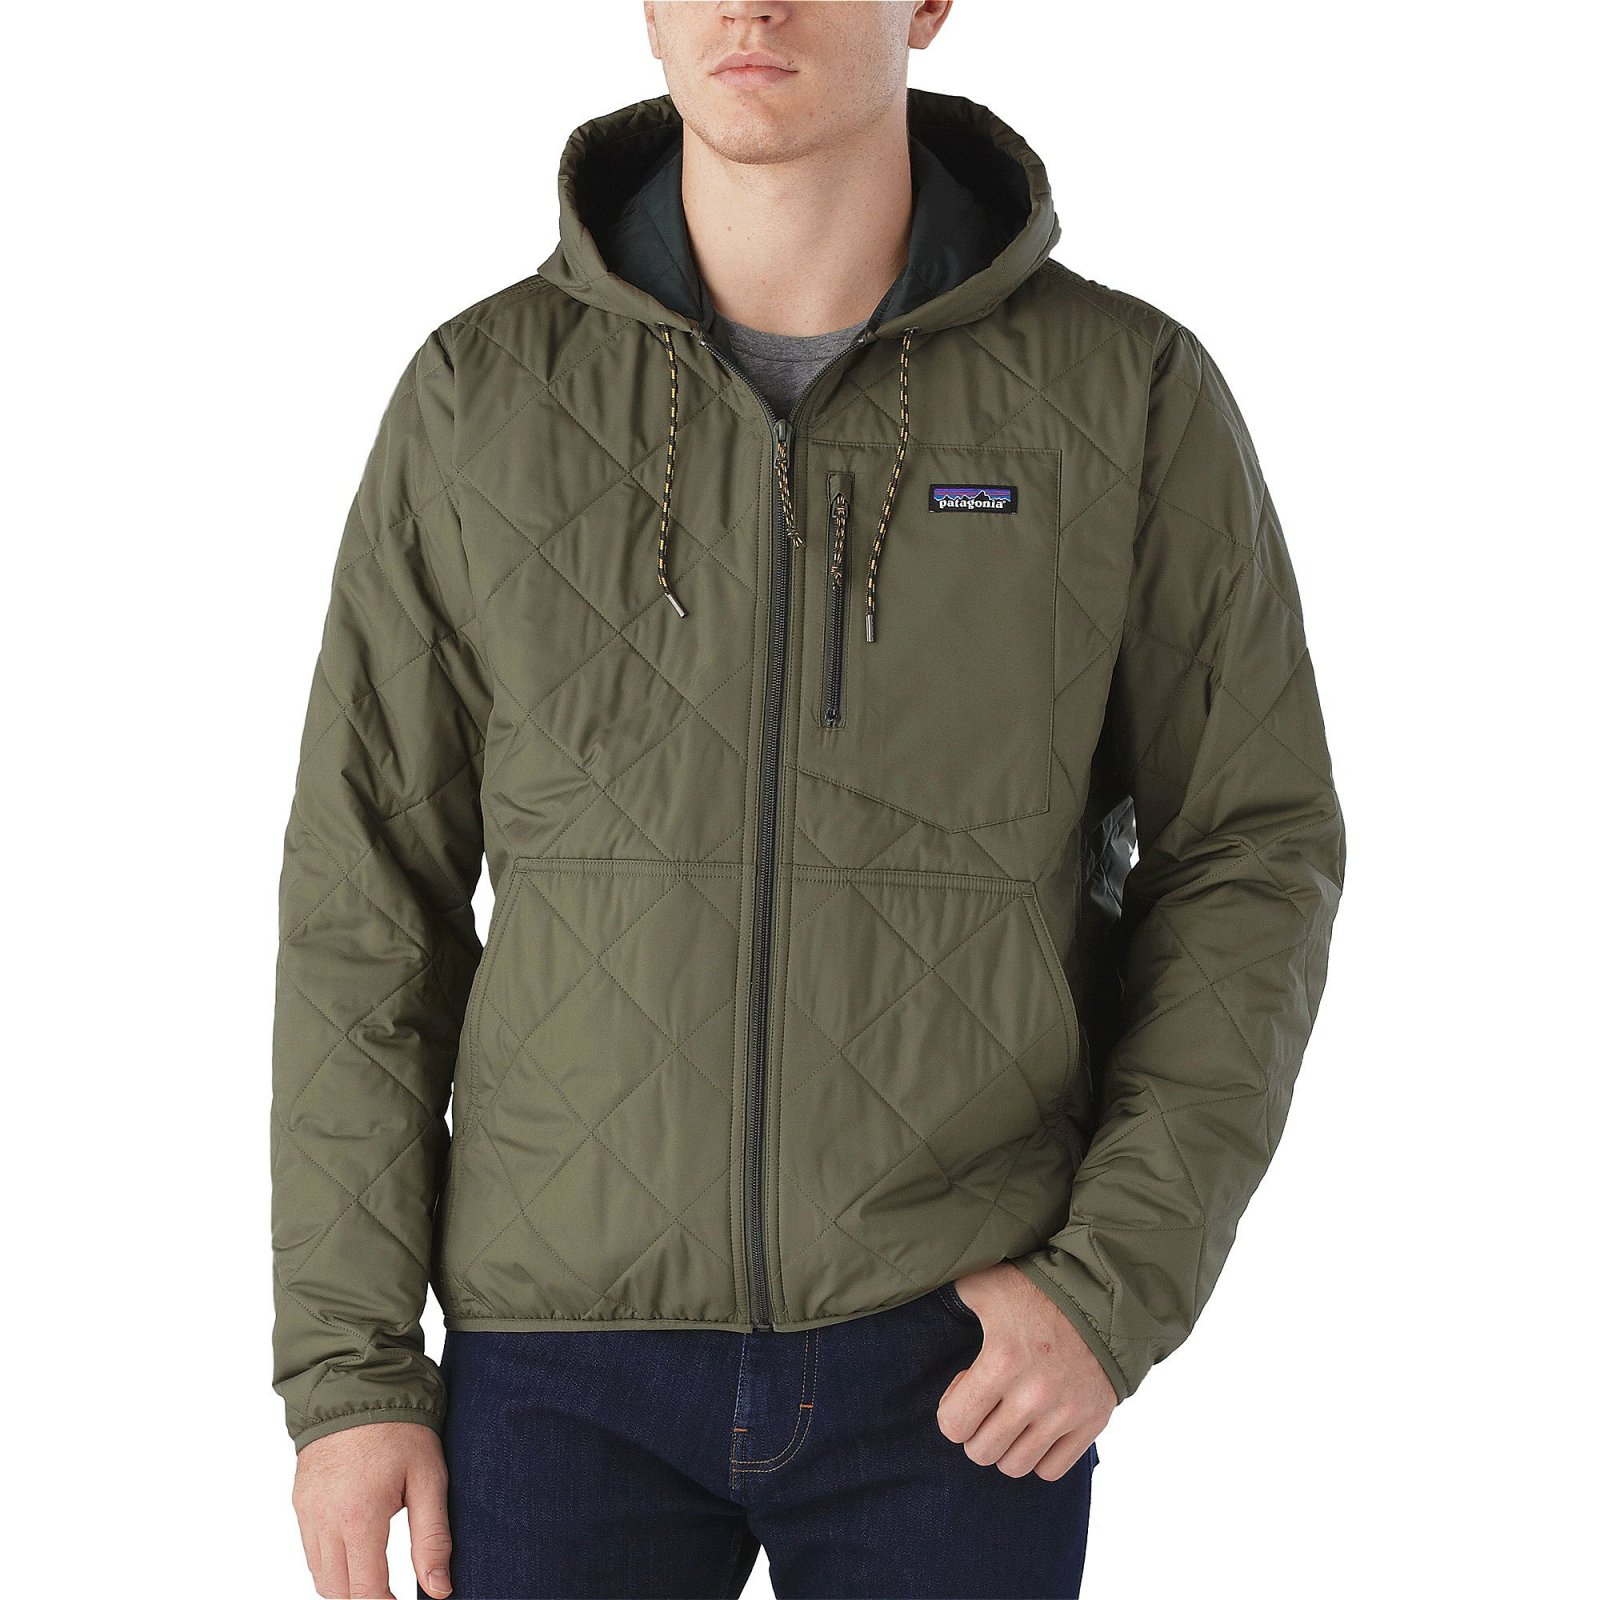 Patagonia Diamond Quilted Bomber Hoody Industrial Green - 889833123953 : patagonia diamond quilt - Adamdwight.com